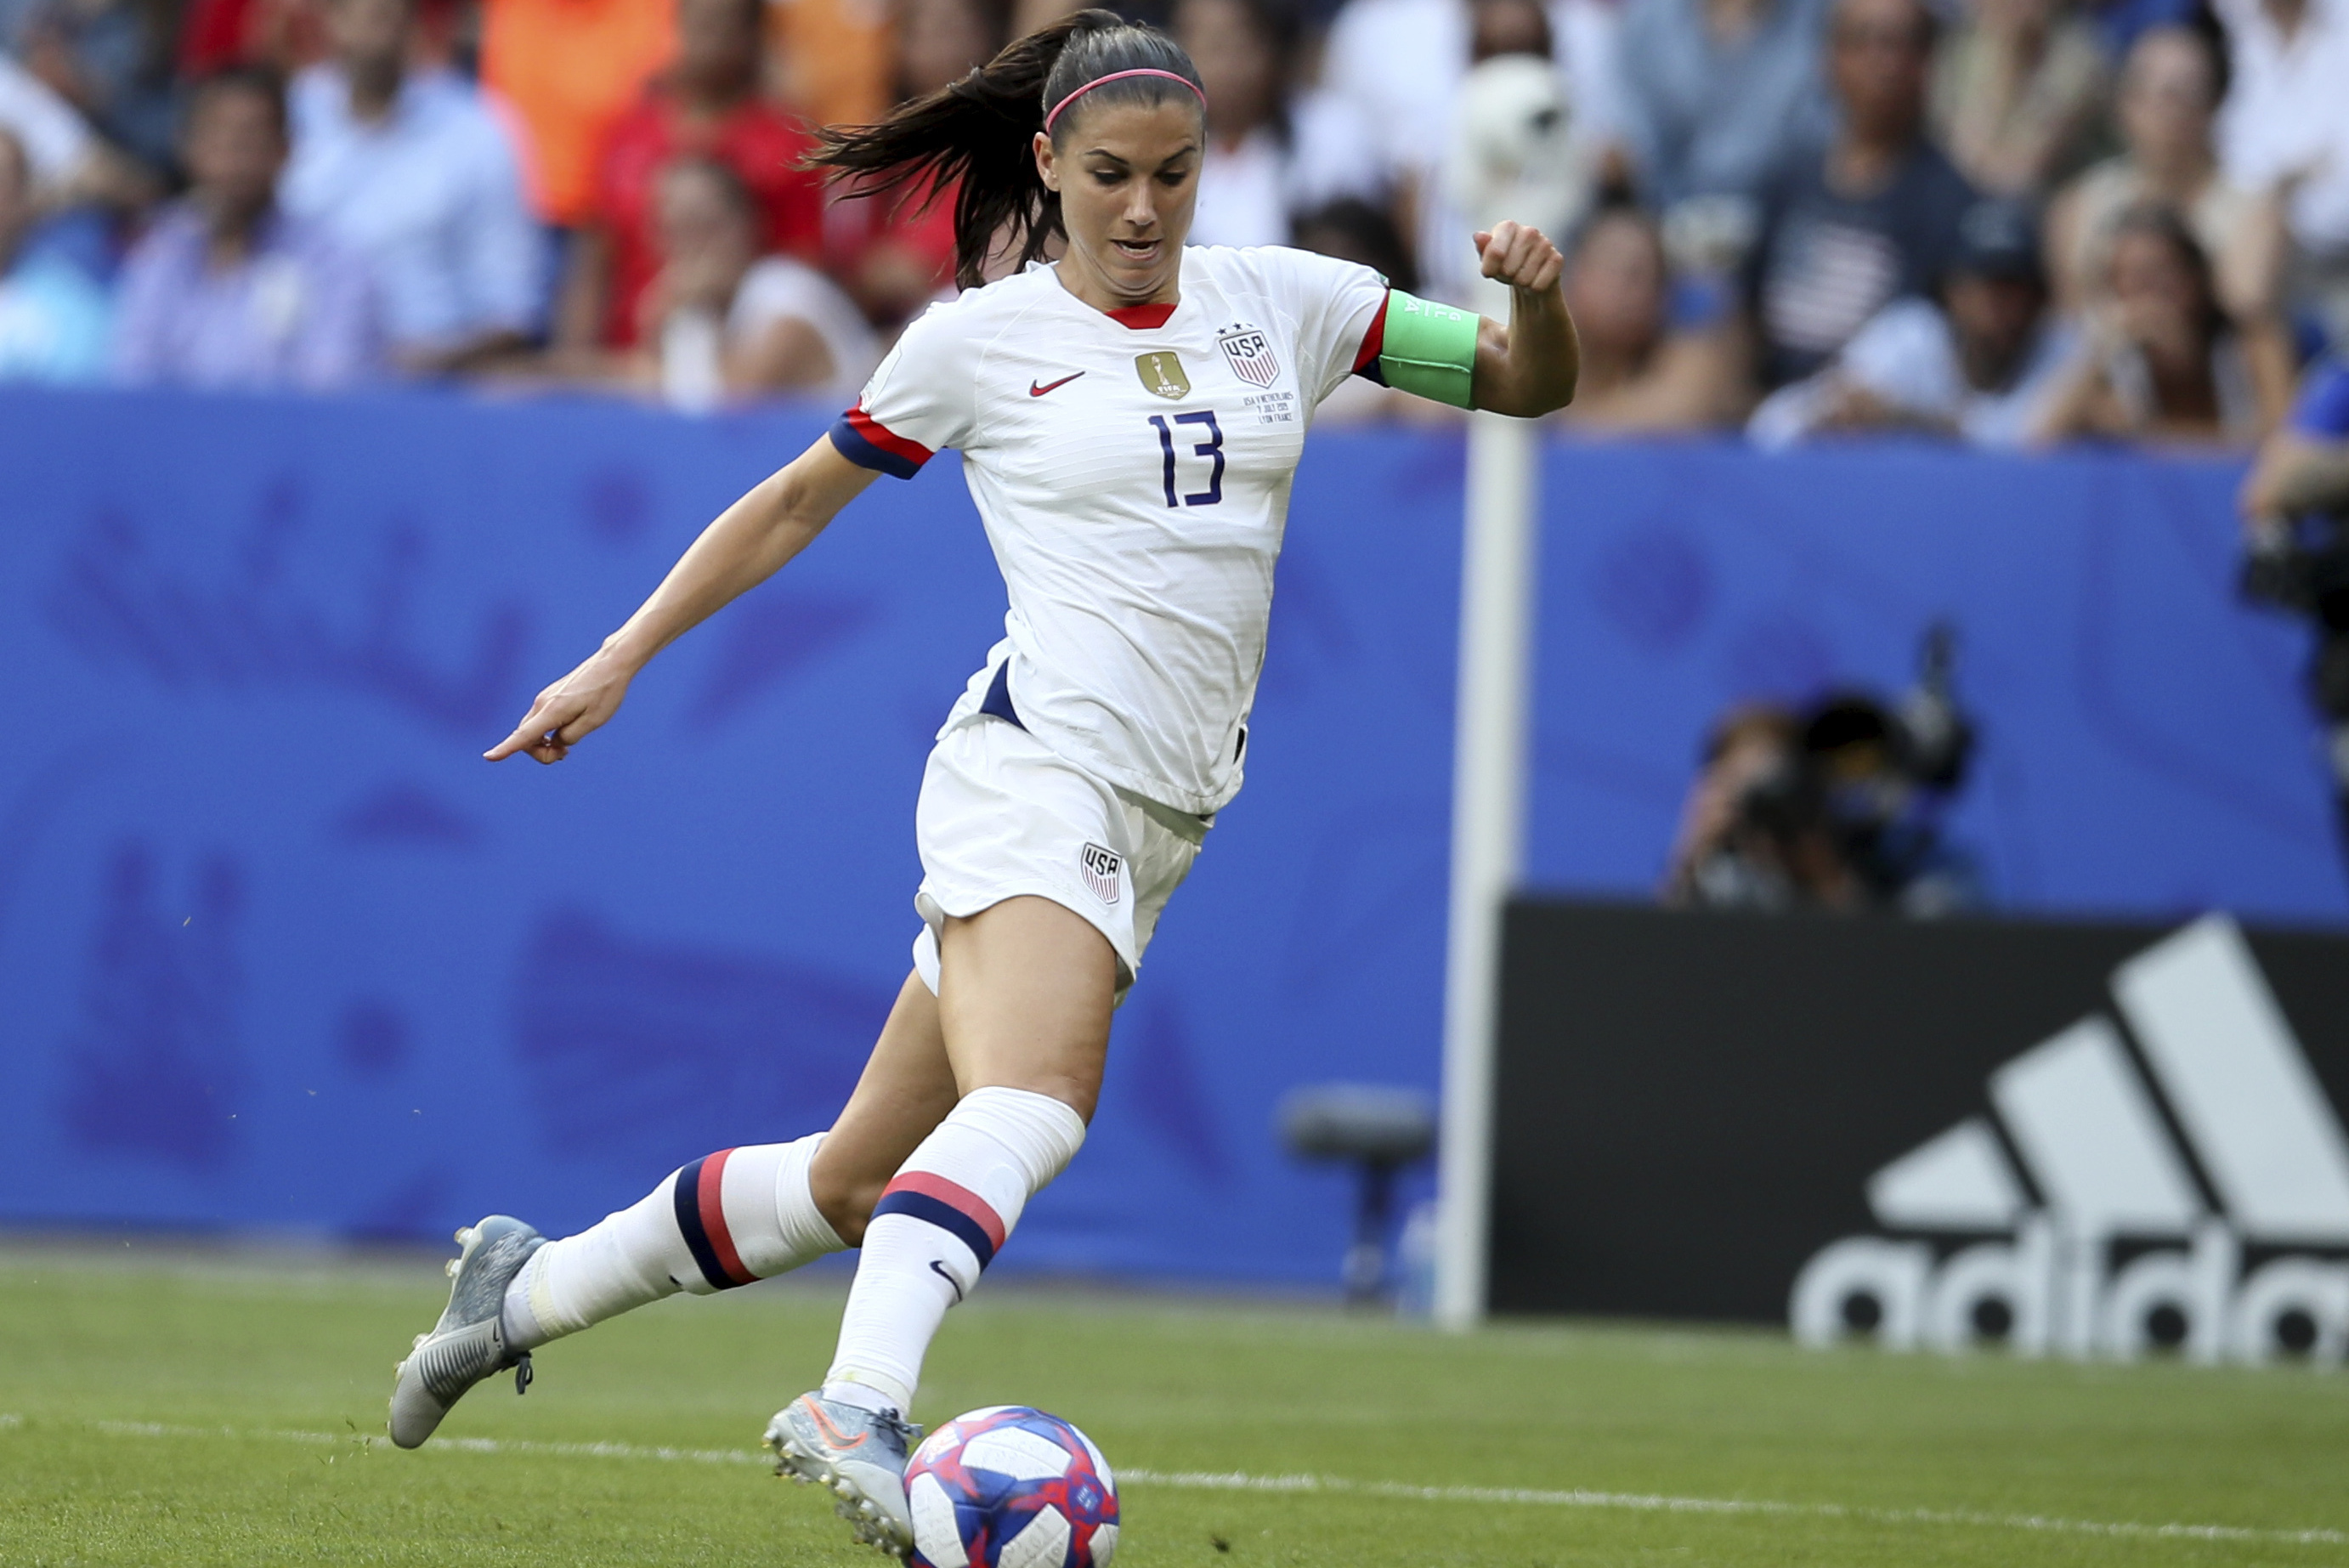 Uswnt S Alex Morgan Agrees To Join Tottenham On Loan From Orlando Pride Bleacher Report Latest News Videos And Highlights